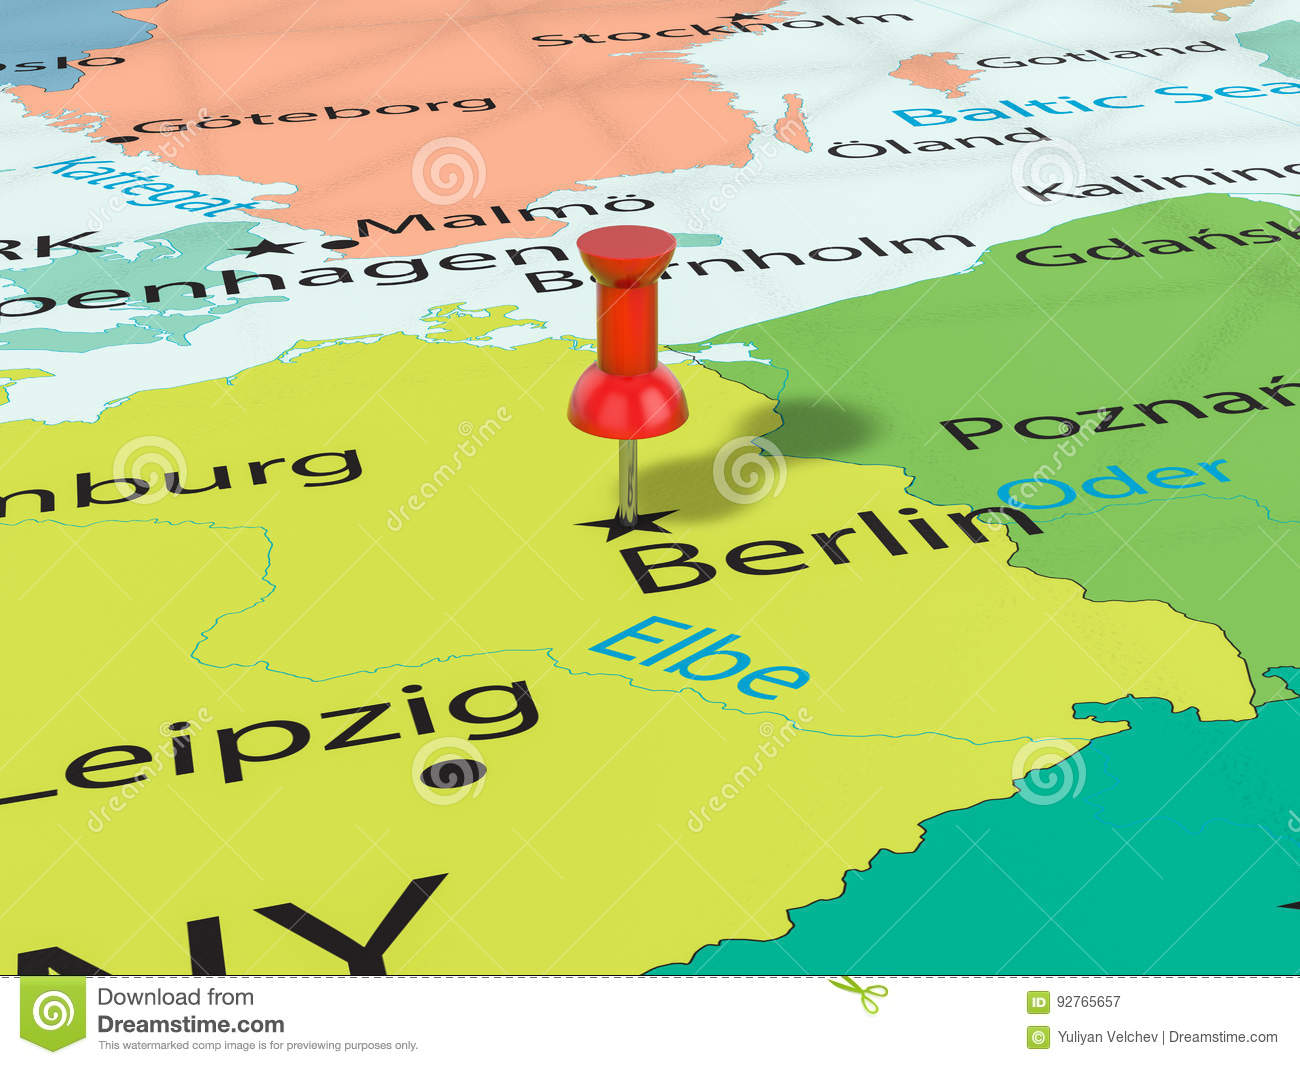 Pushpin on Berlin map stock illustration. Illustration of thumbtack ...